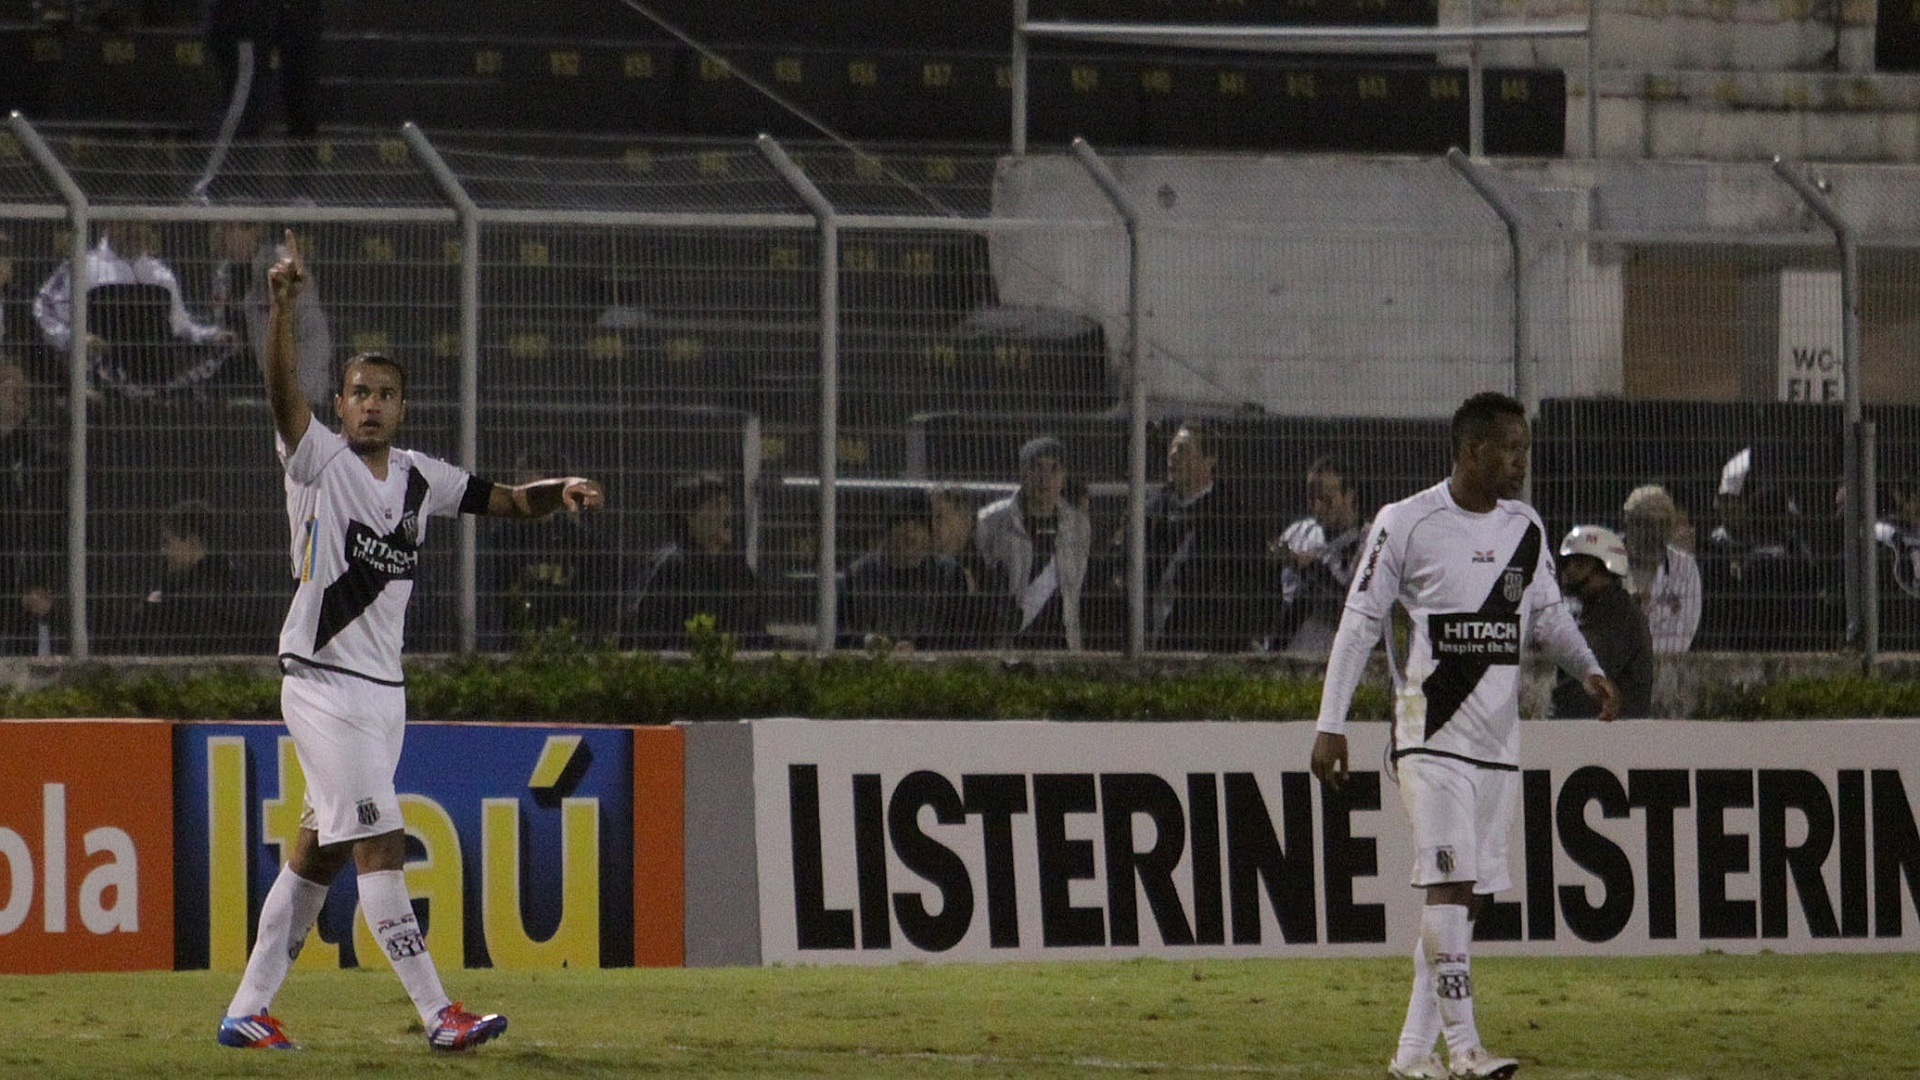 Roger comemora um dos seus trs gols na goleada da Ponte Preta sobre o Coritiba (14/07/2012)